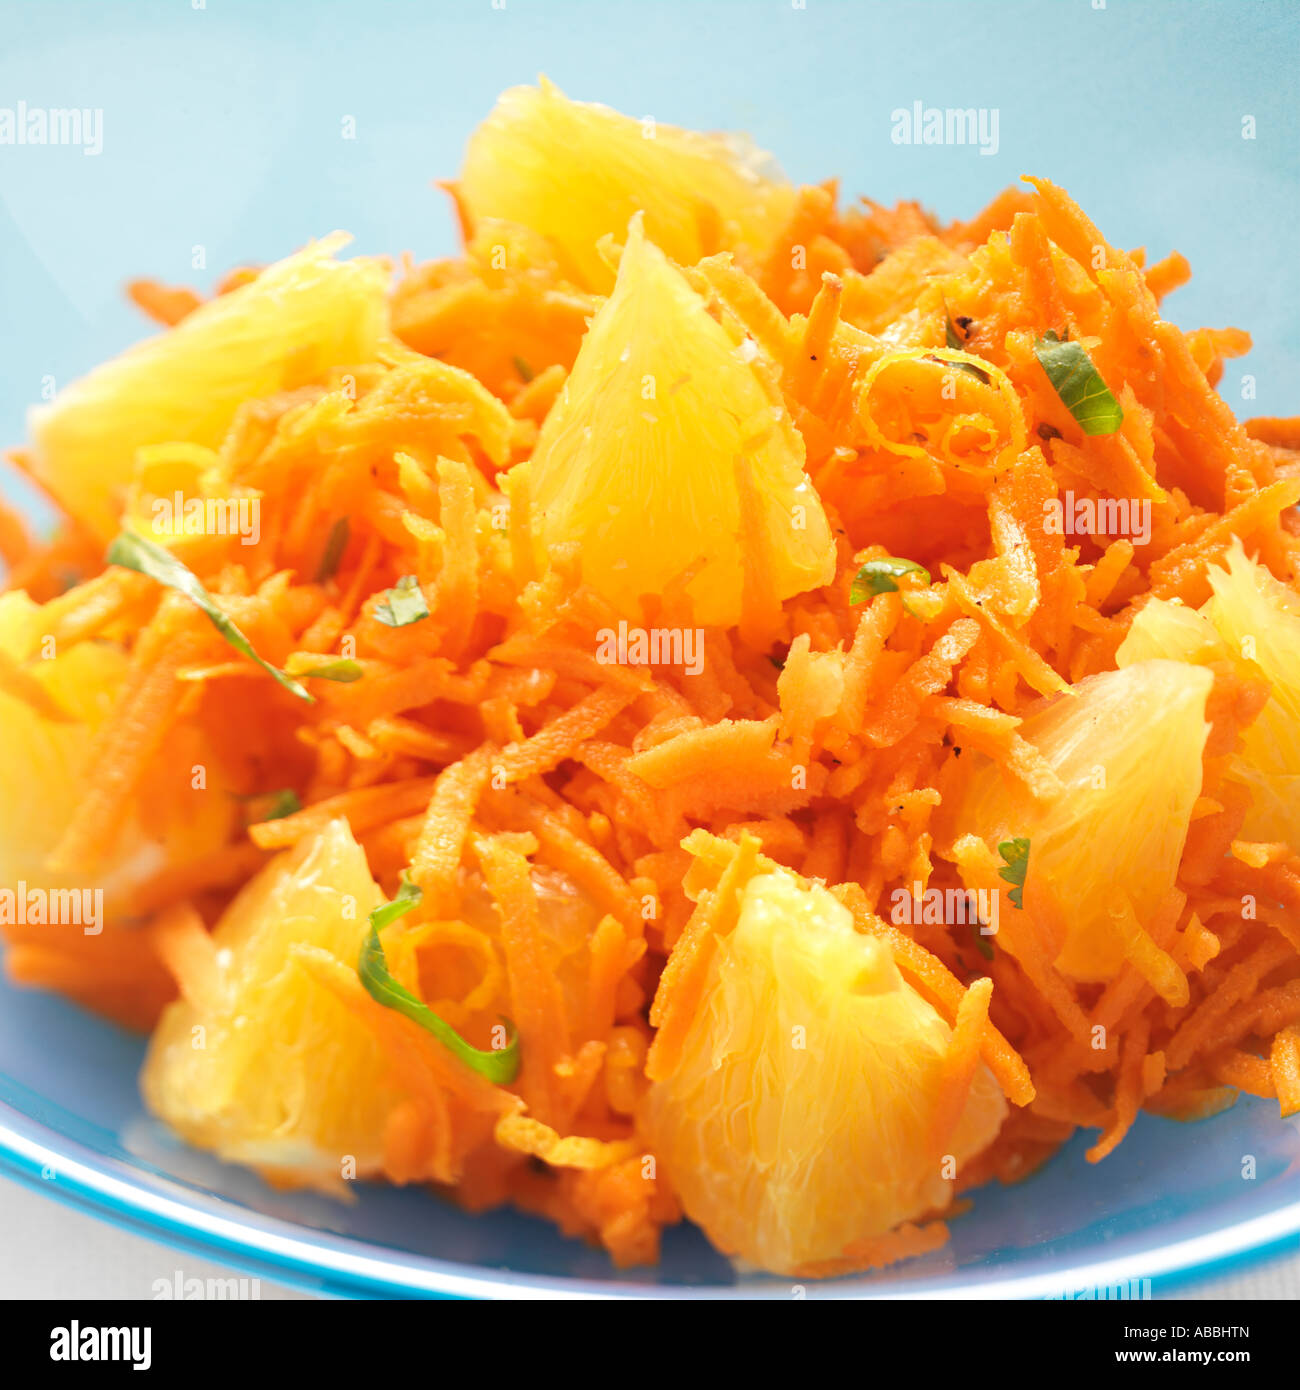 Moroccan Carrot Salad with Orange Zest Morocco - Stock Image